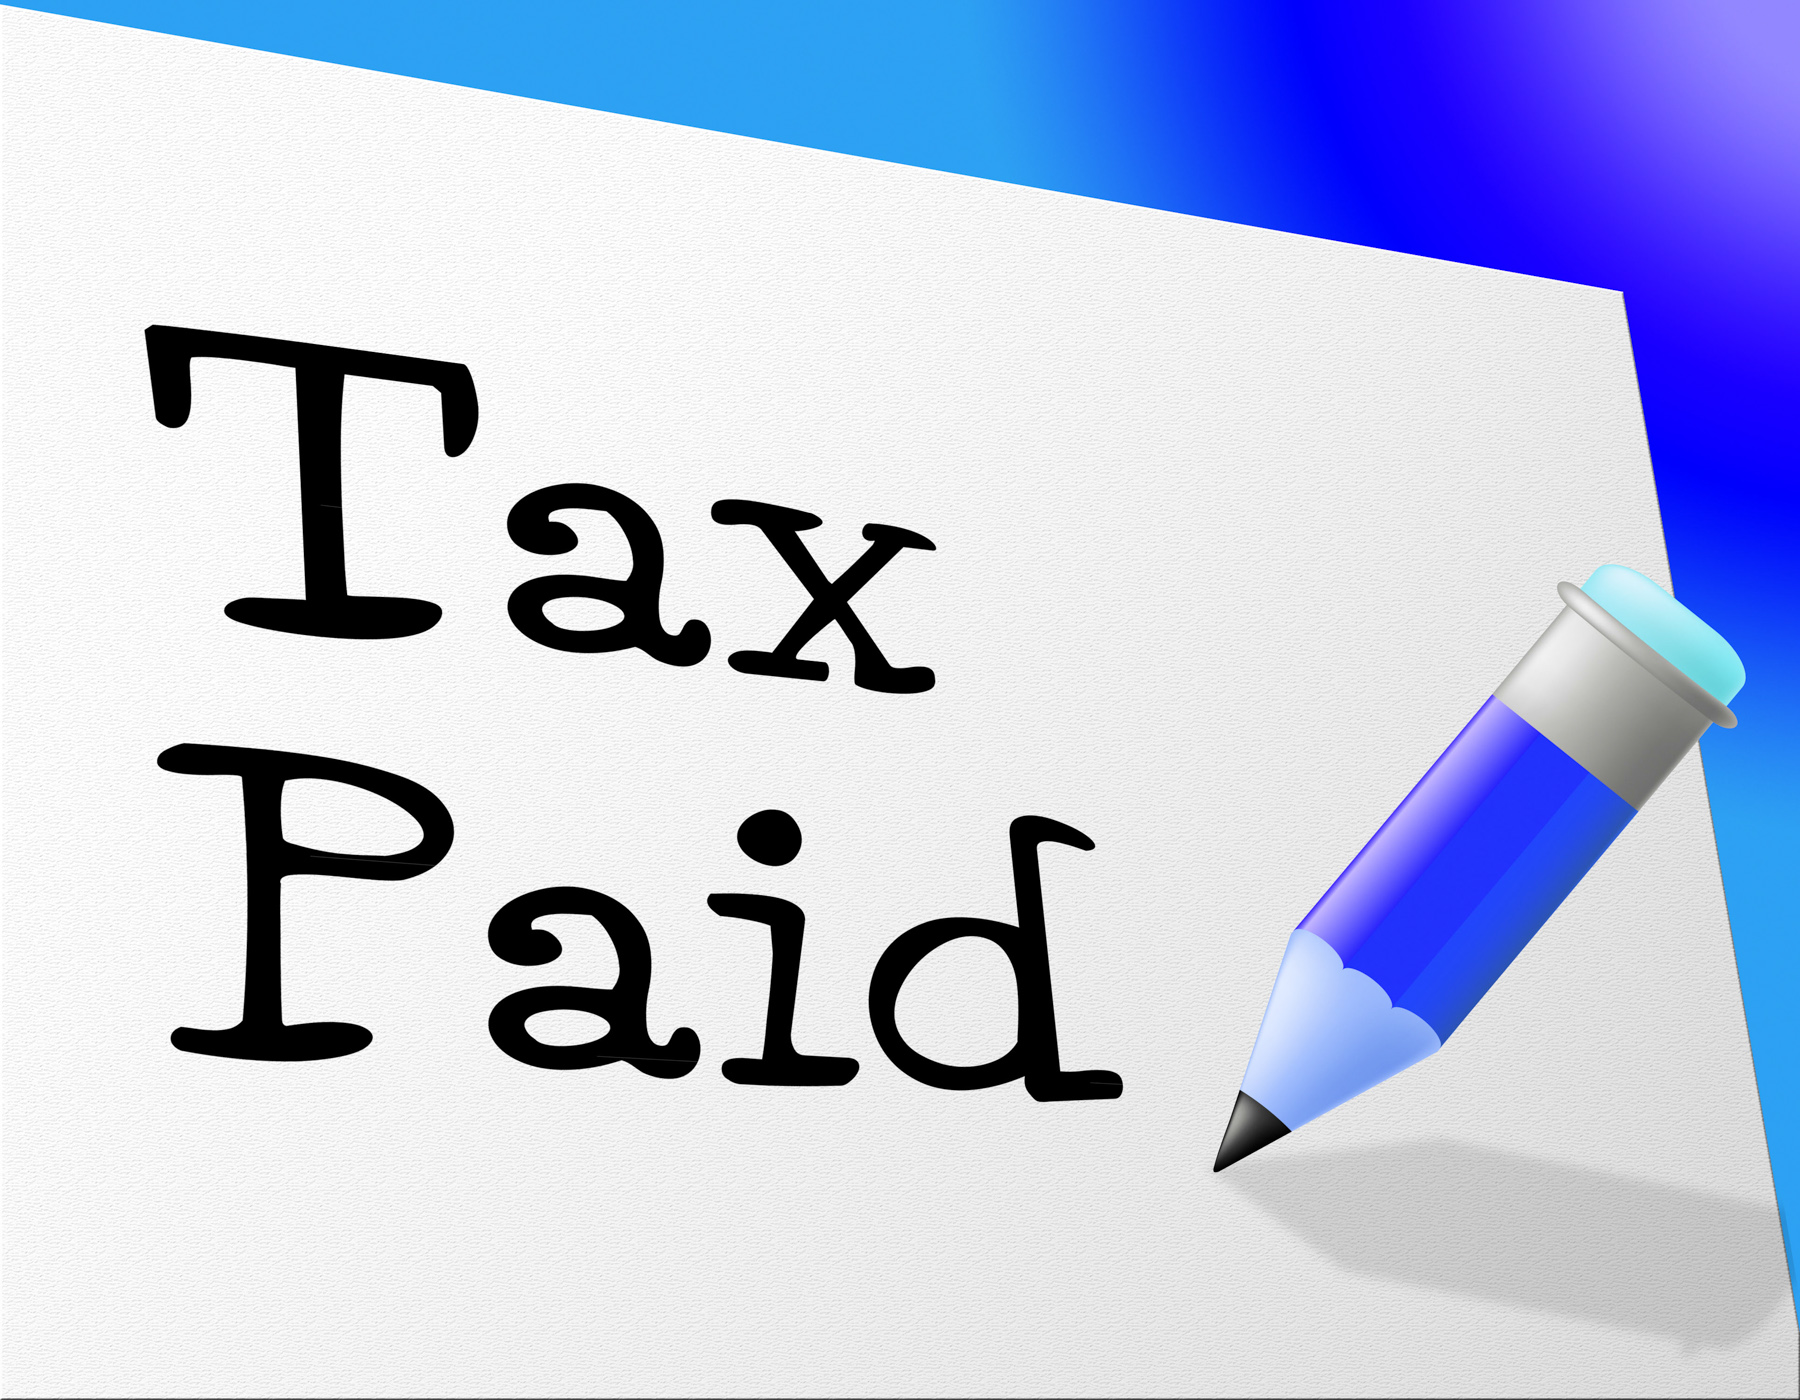 Tax paid represents pay bills and payment photo